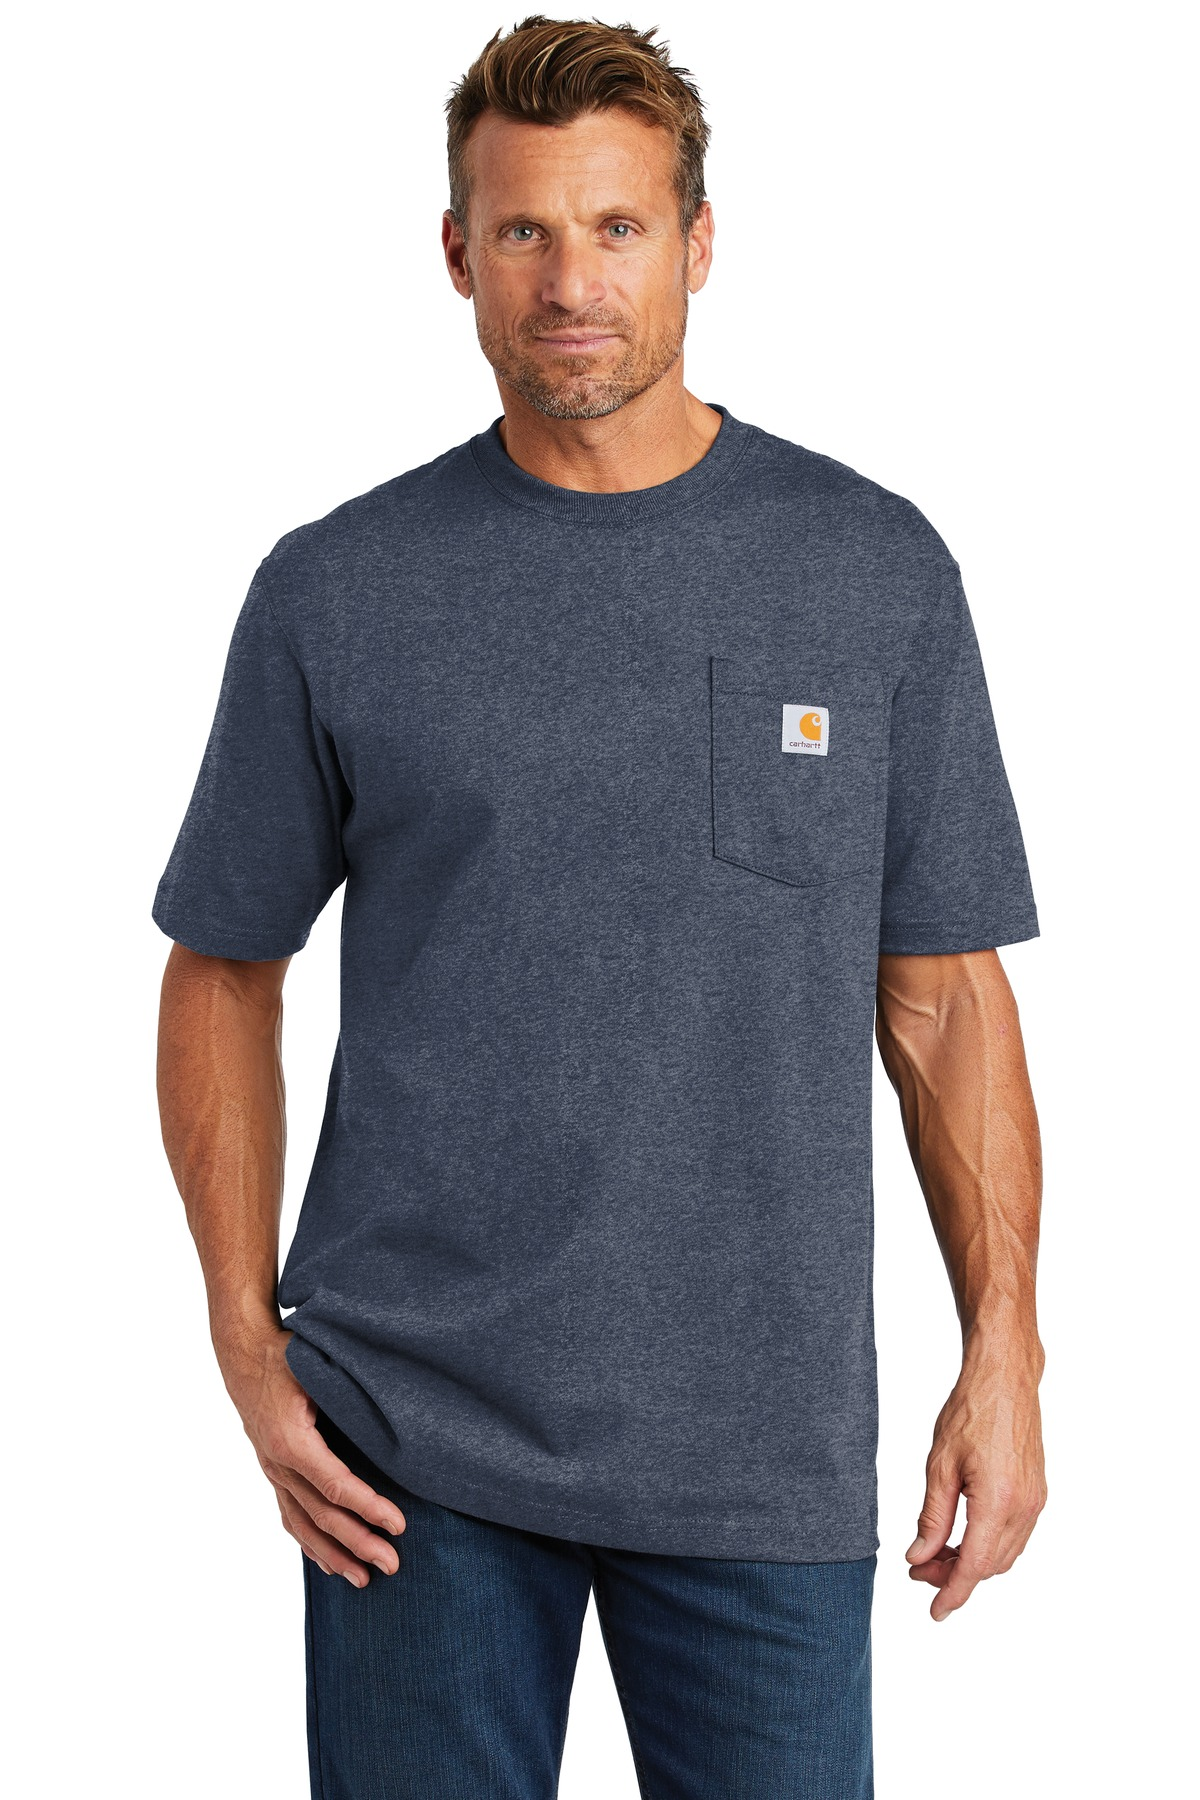 Carhartt  ®  Tall Workwear Pocket Short Sleeve T-Shirt. CTTK87 - Dark Cobalt Blue Heather